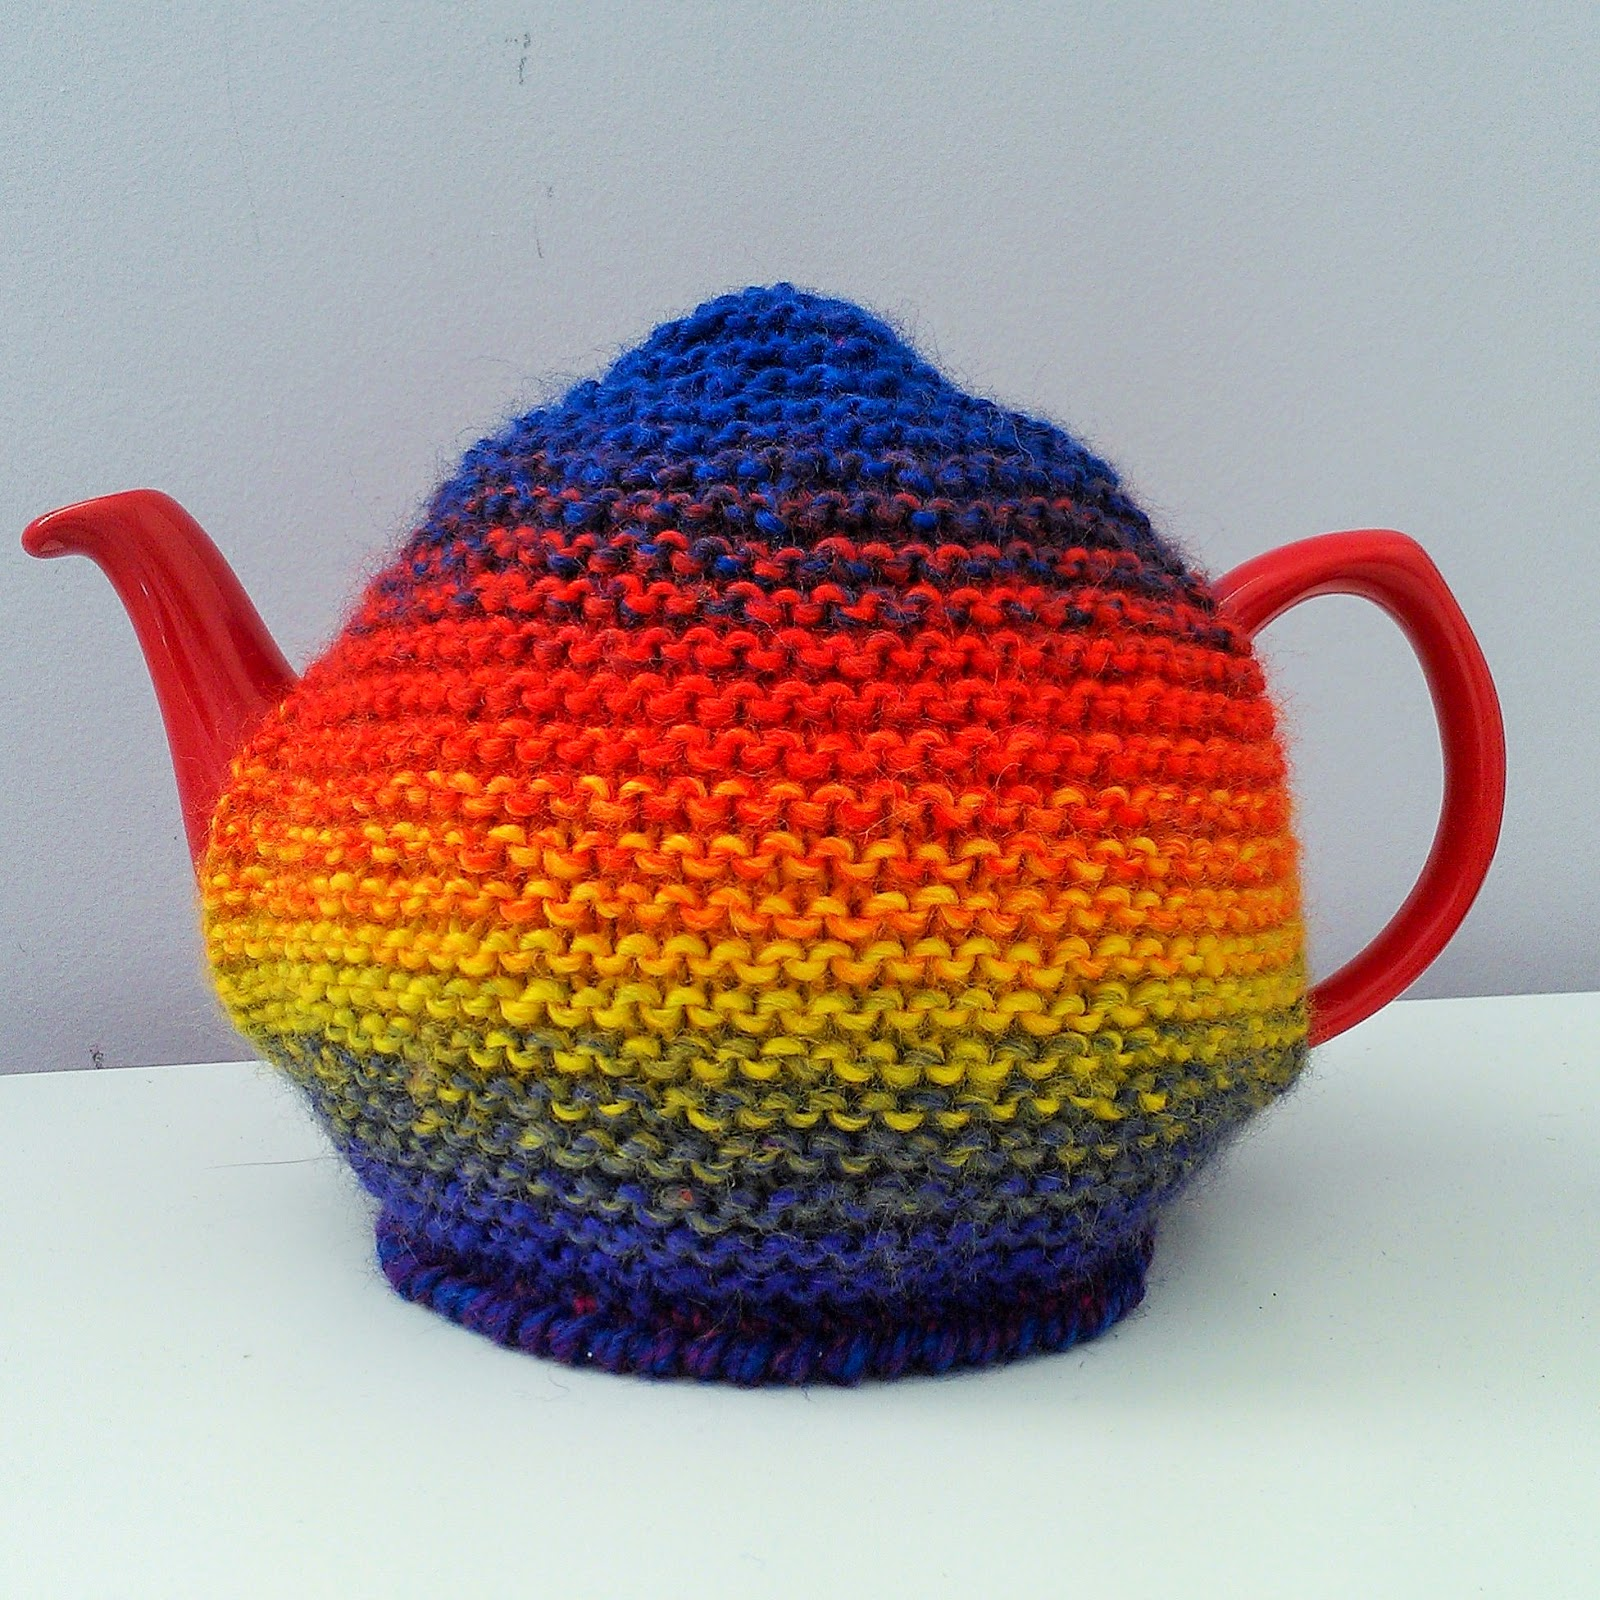 Basic Knitting Pattern For Tea Cosy : Craft a cure for cancer free tea cosy patterns: Decorating ...